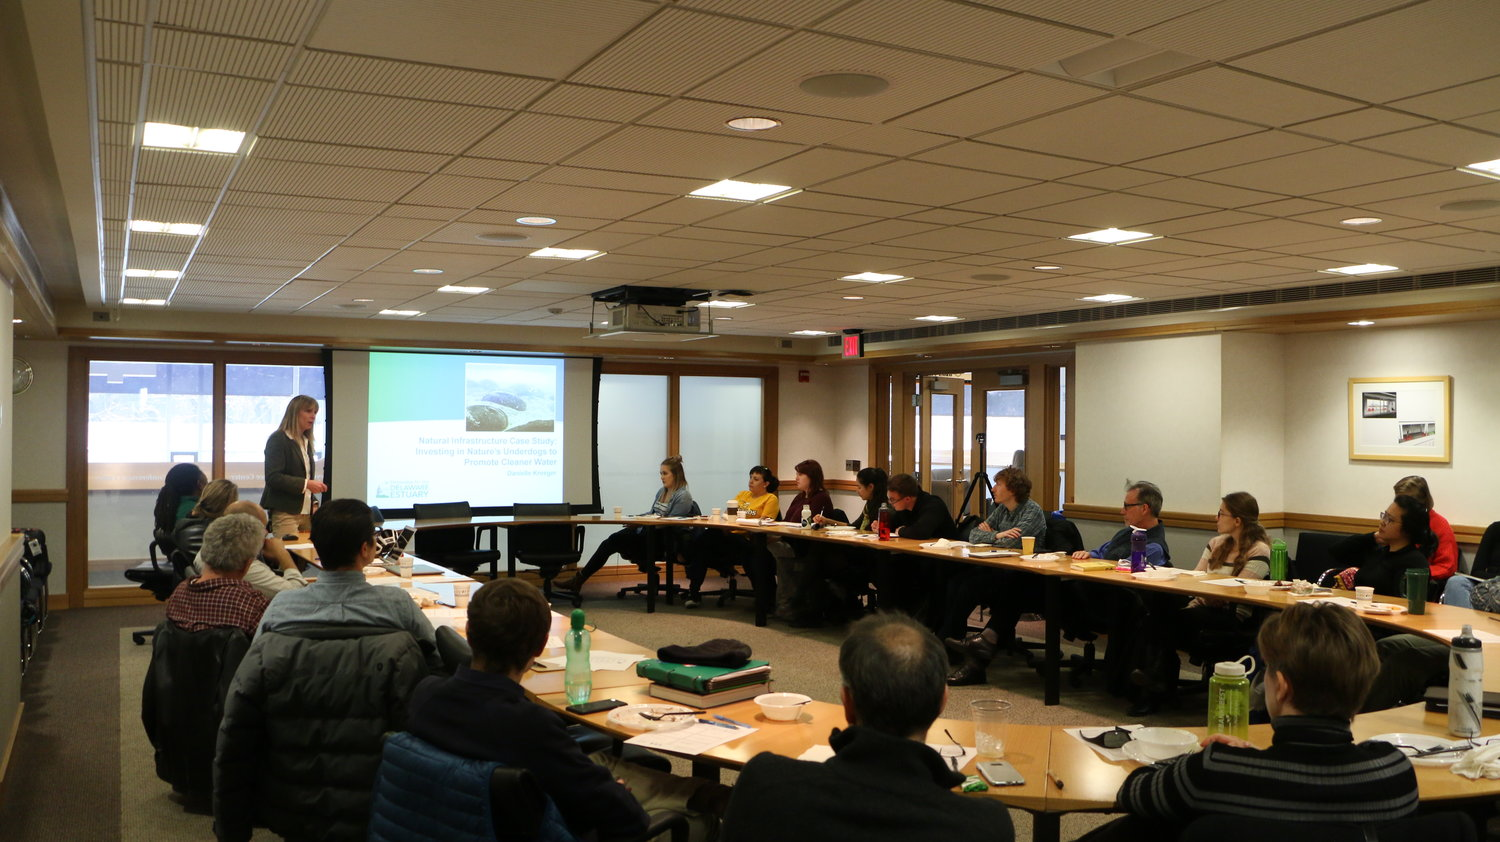 Danielle Kreeger leading discussion at the Schuylkill Corps' bi-weekly seminar this past Fall.